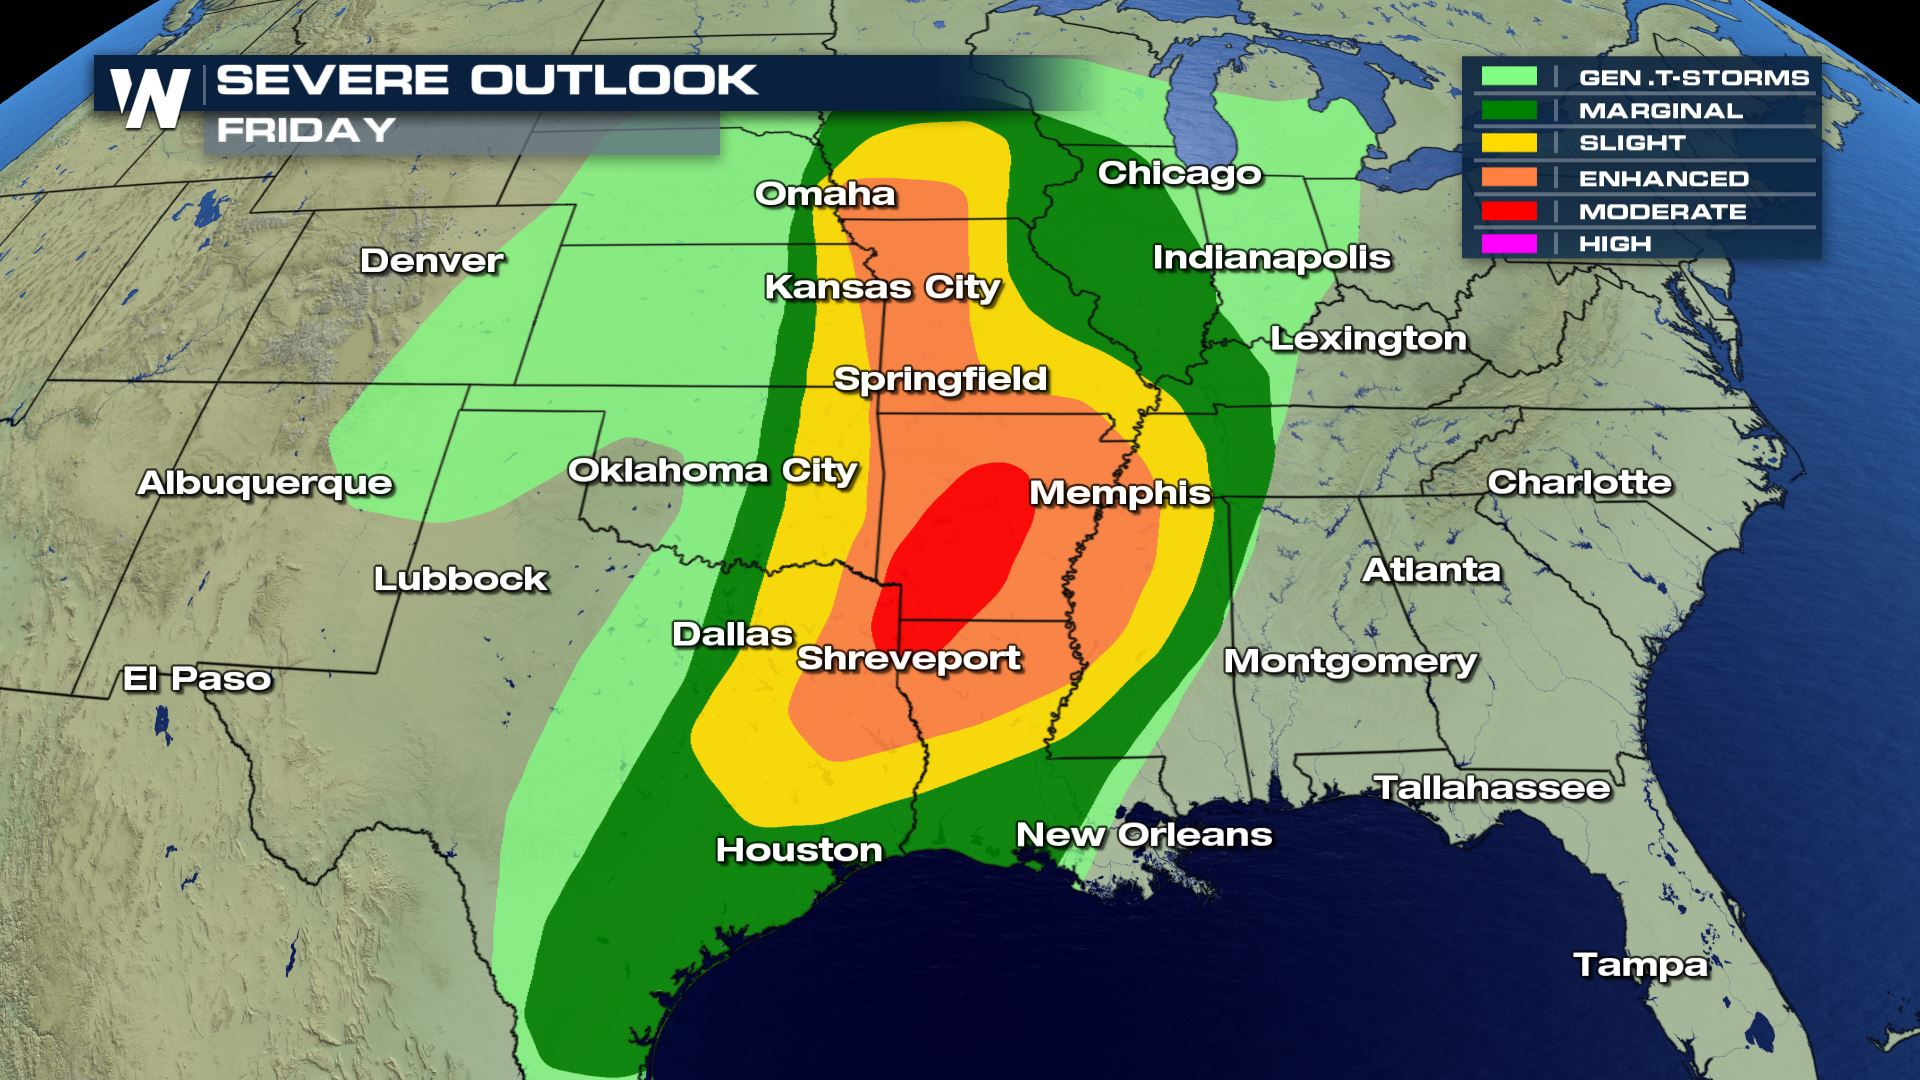 Moderate Risk for Severe Weather for Friday - WeatherNation